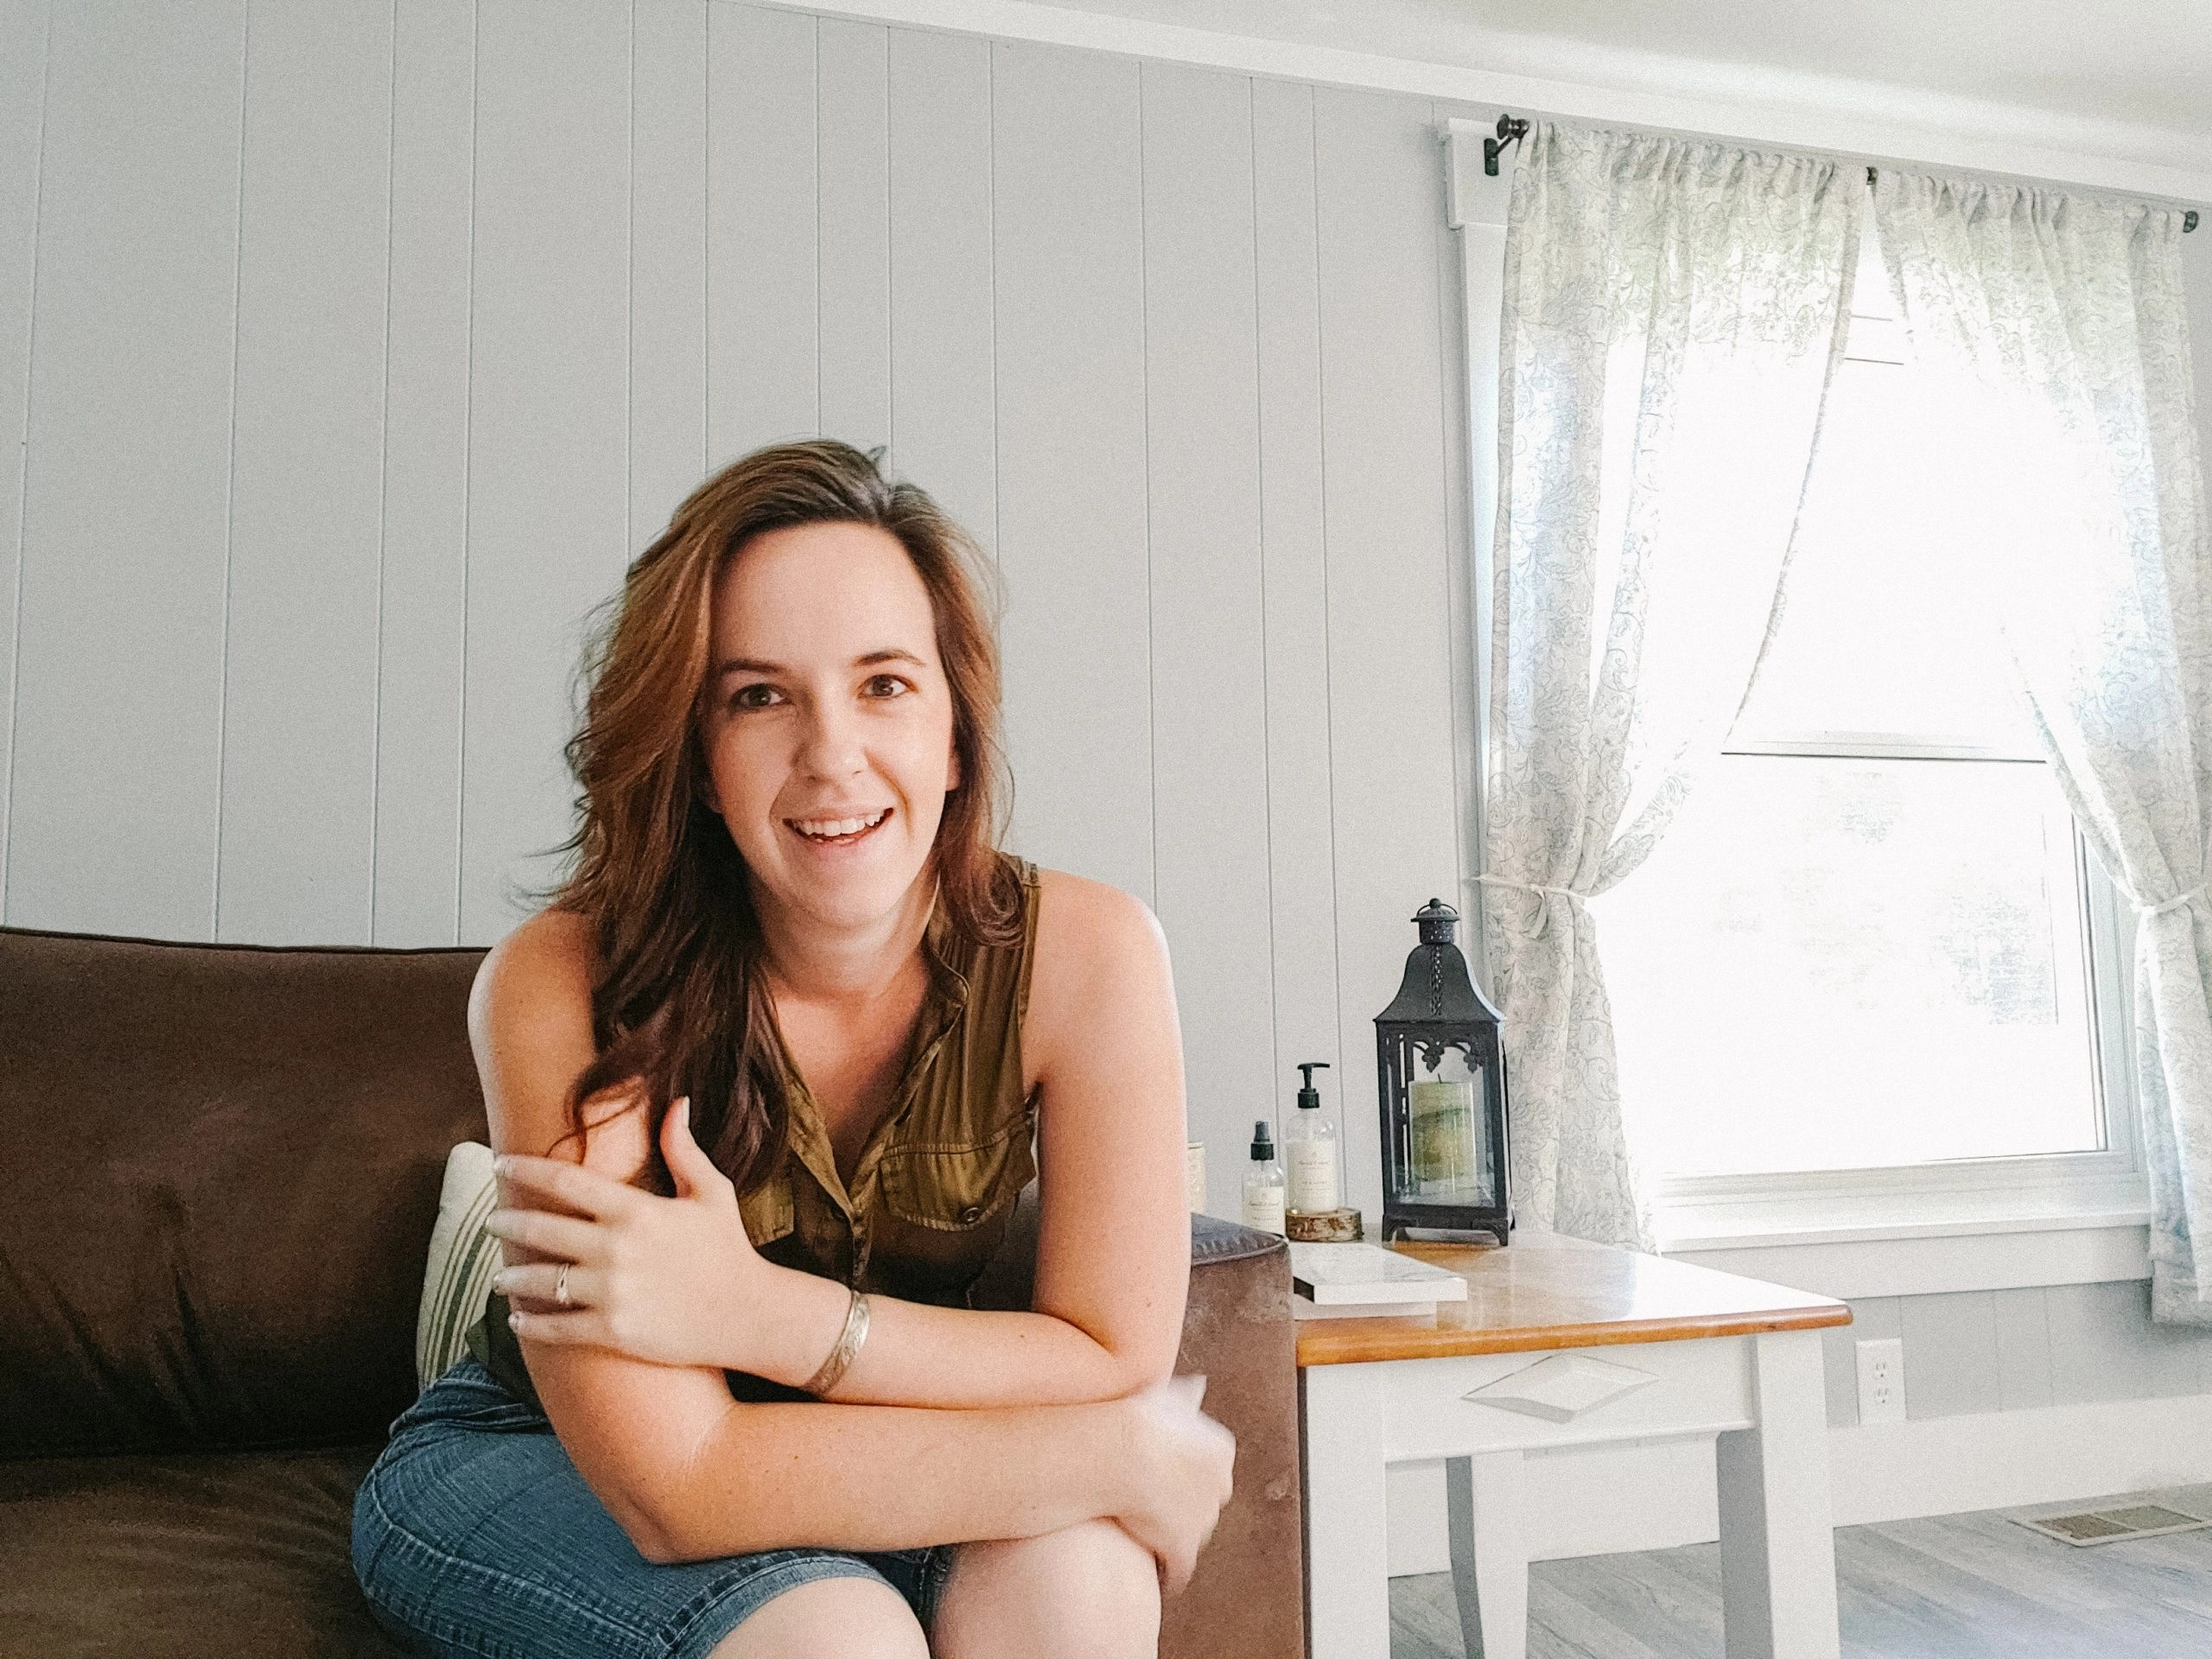 Leah Lynch of Leahs lovely lops sitting on her couch smiling friendly